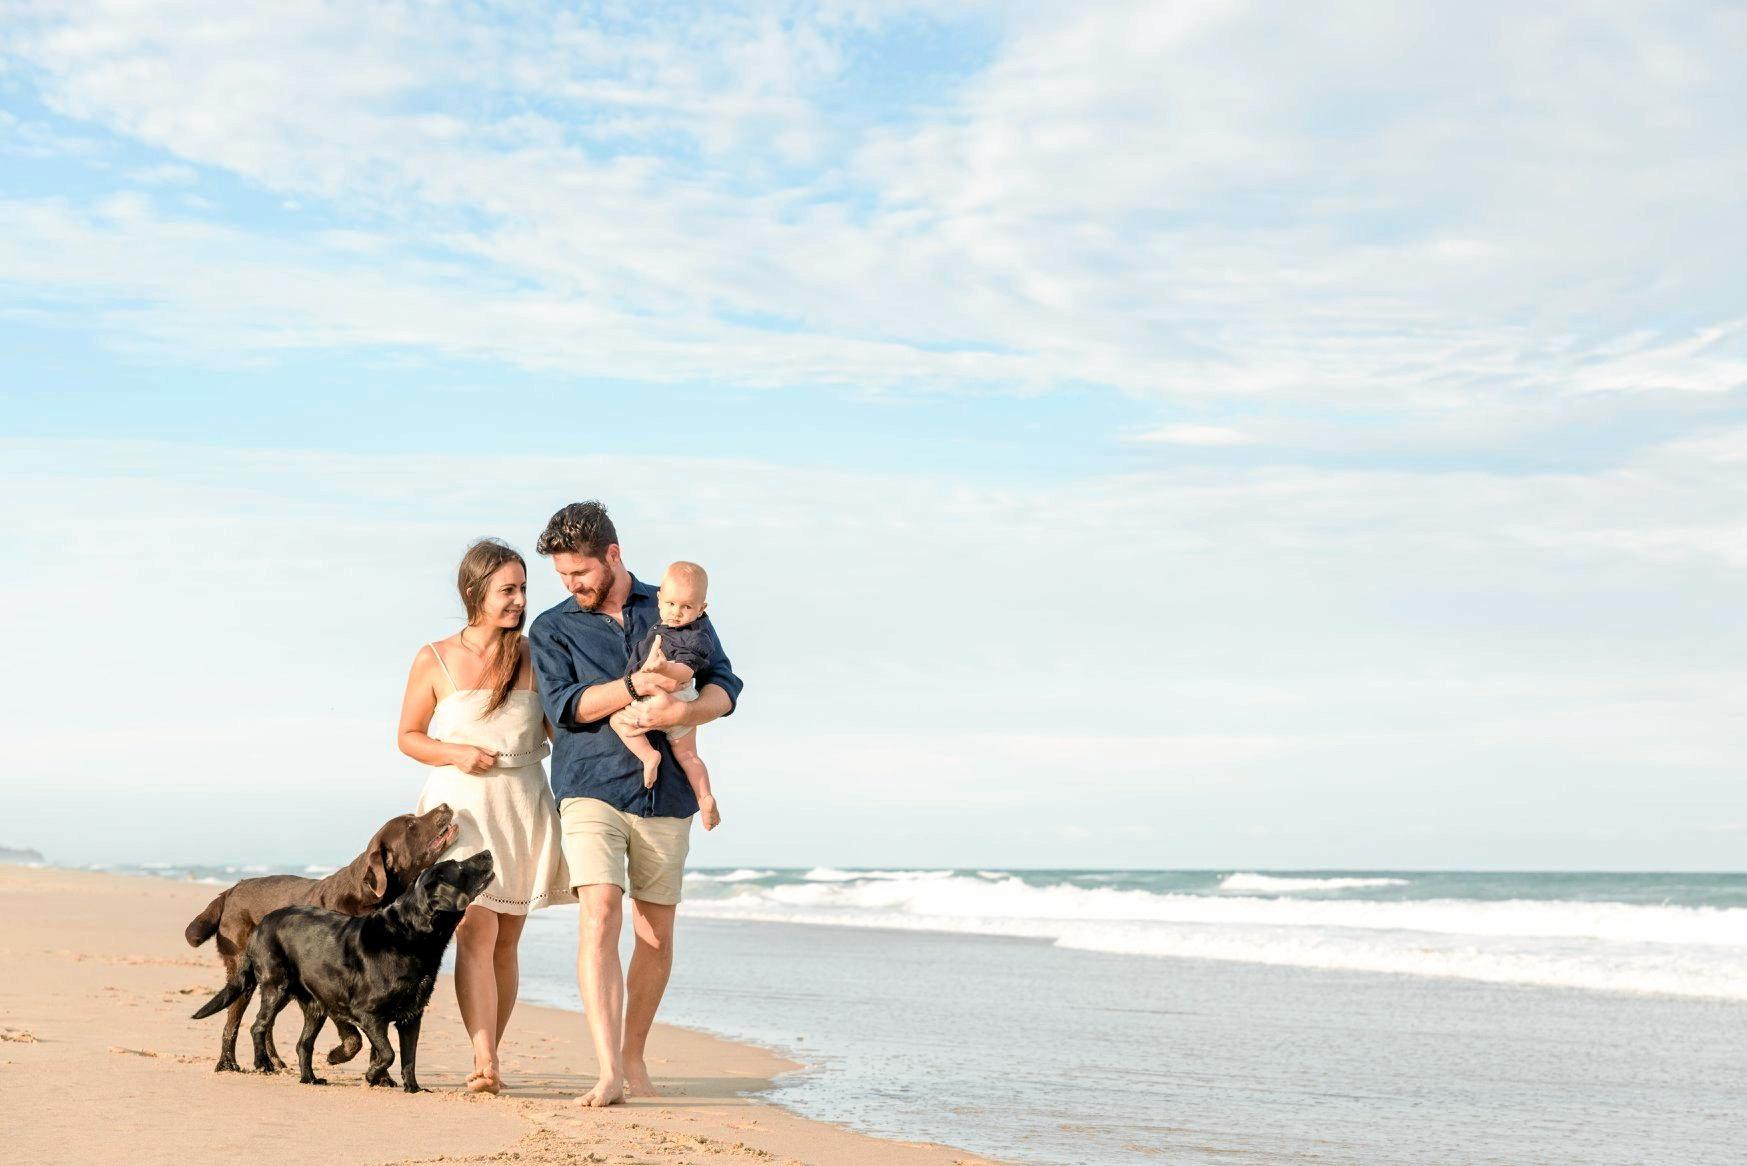 The Roux family are devastated after their dog Bear ate meth left in the dunes at their favourite Sunshine Coast beach.